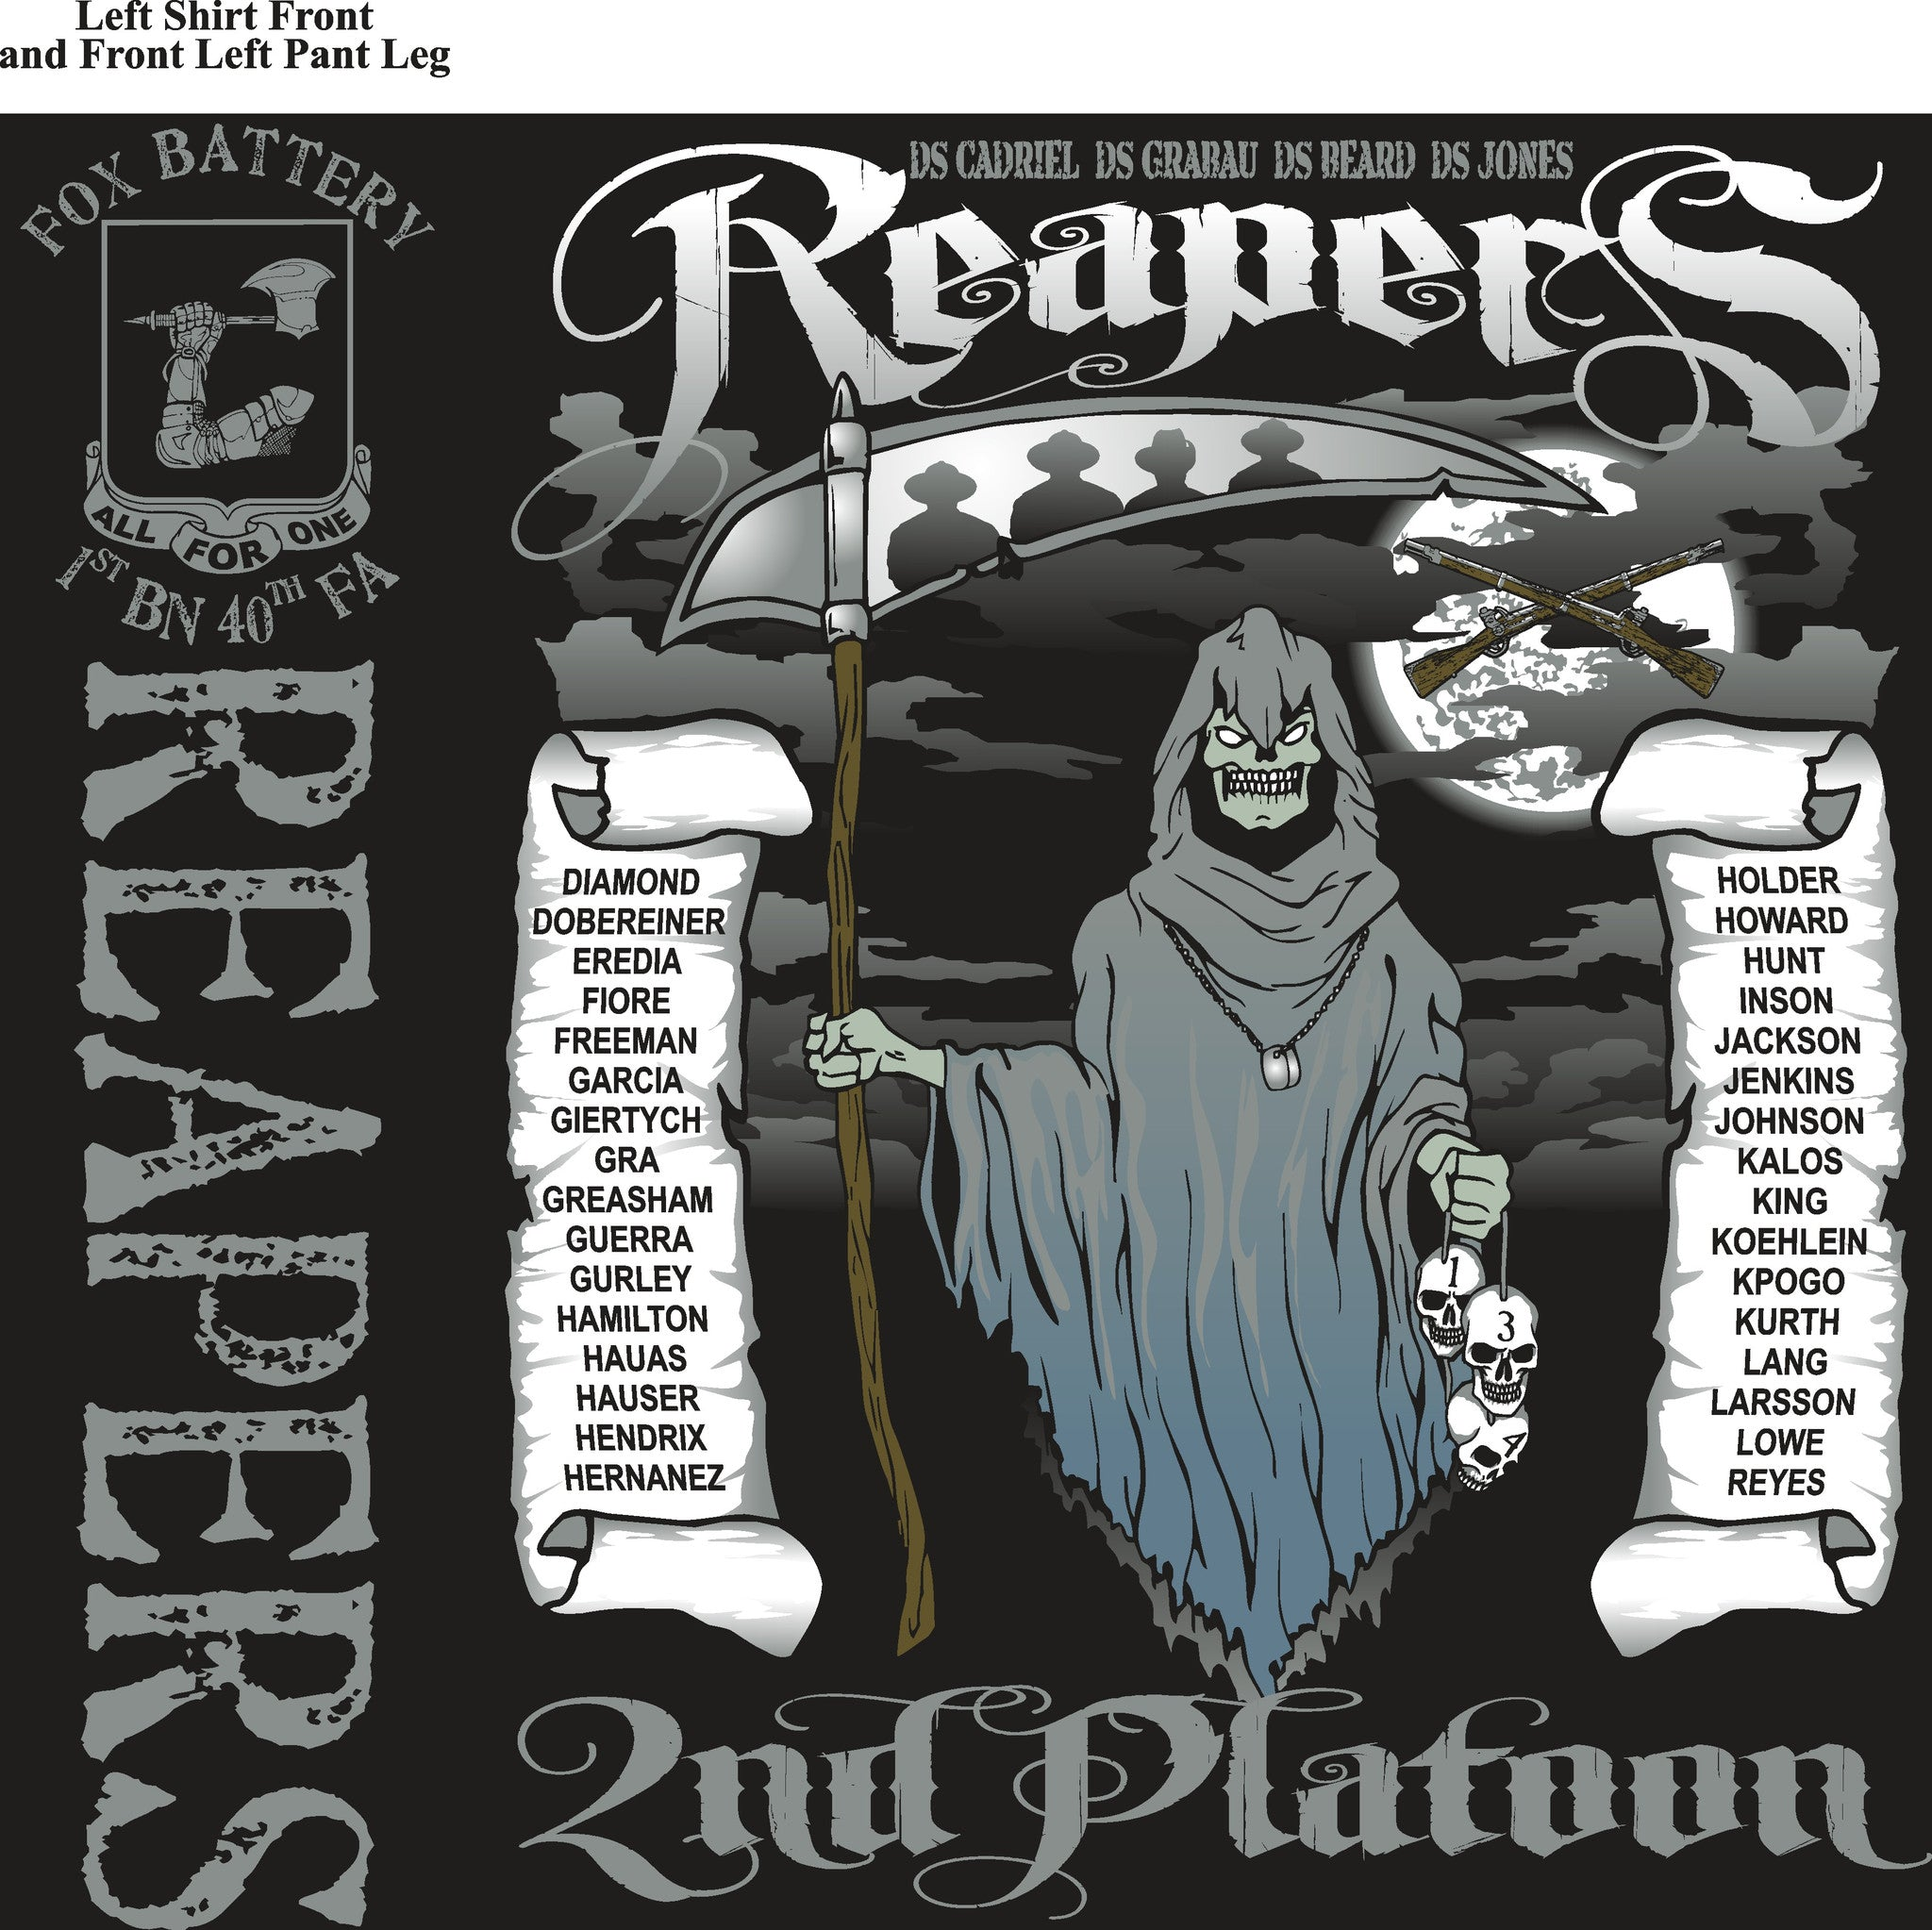 Platoon Shirts FOX 1st 40th REAPERS MAY 2015